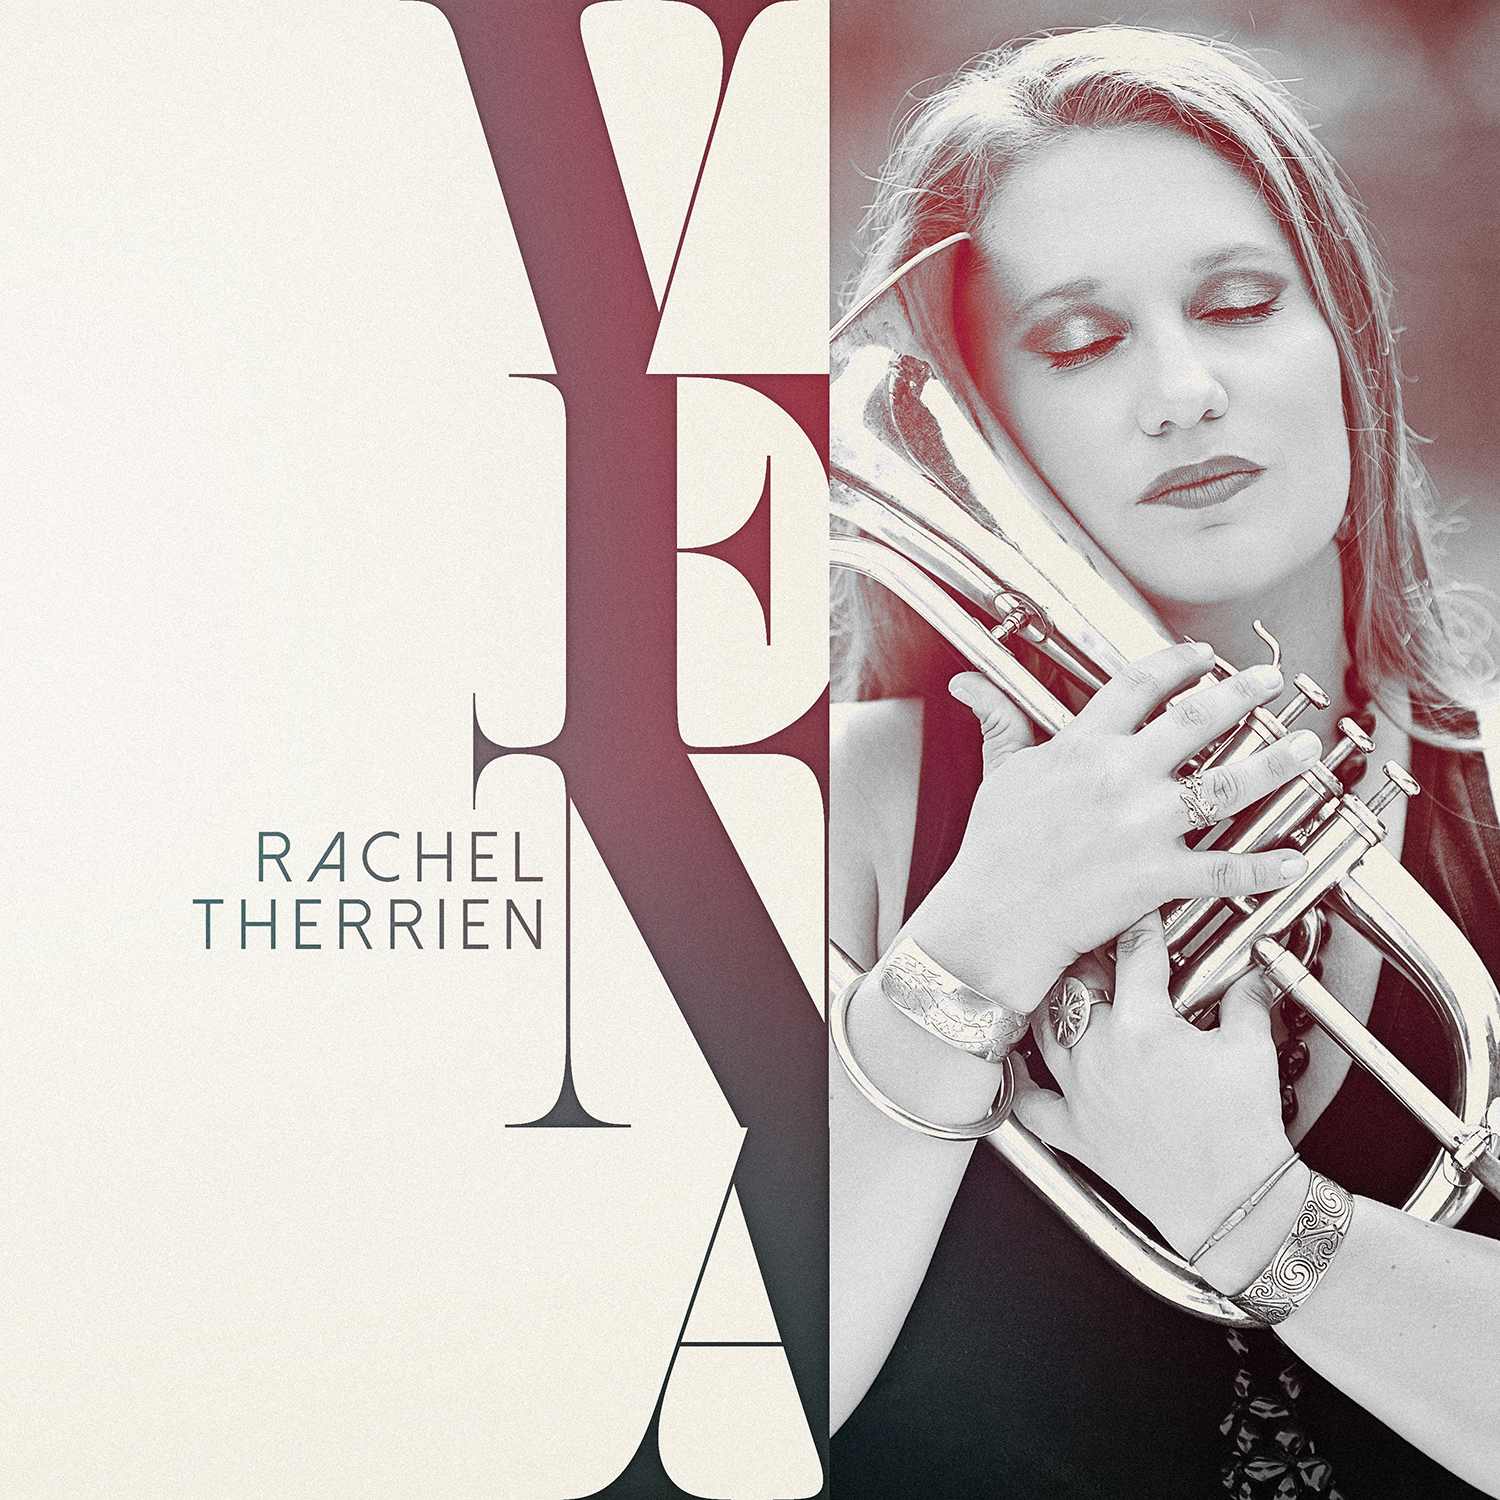 NEW RELEASE: Rachel Therrien's VENA Due Out March 27th, 2020